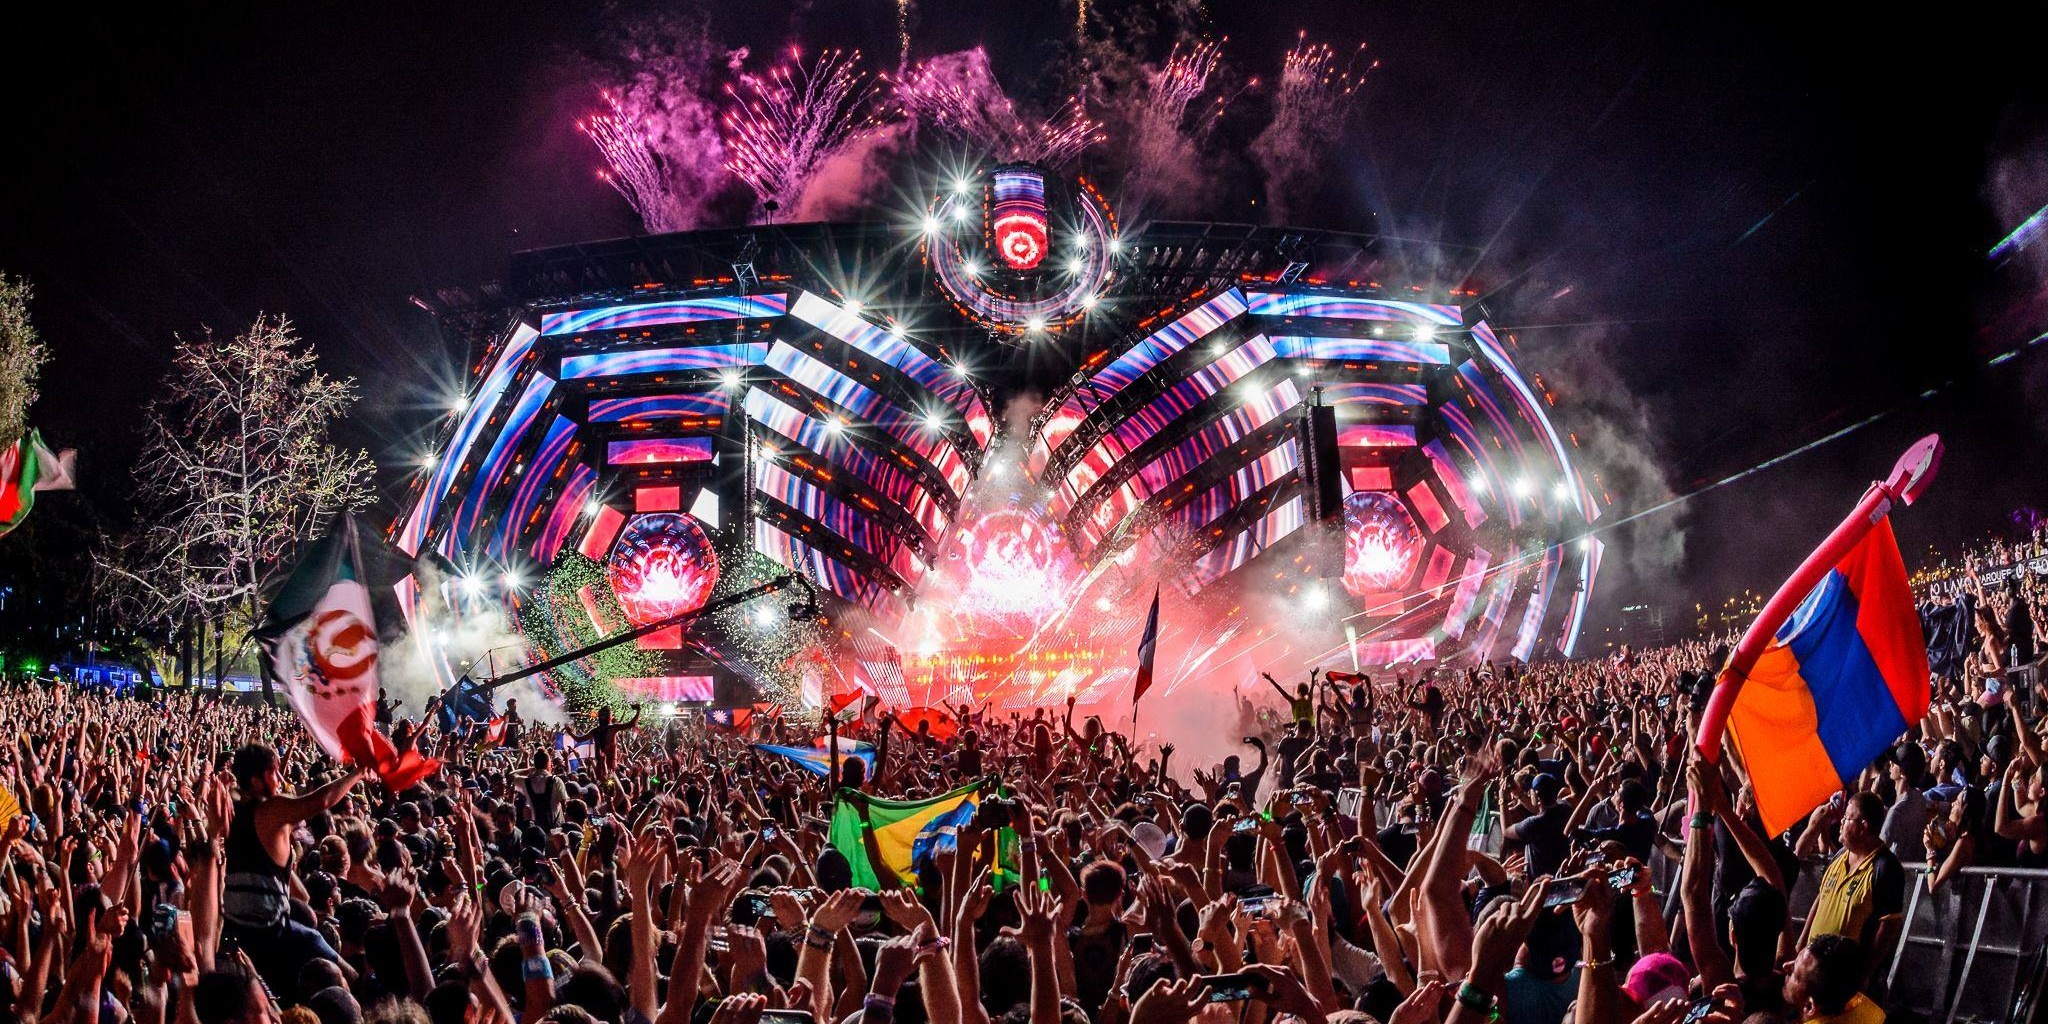 You'll be able to watch Ultra Singapore at home this weekend